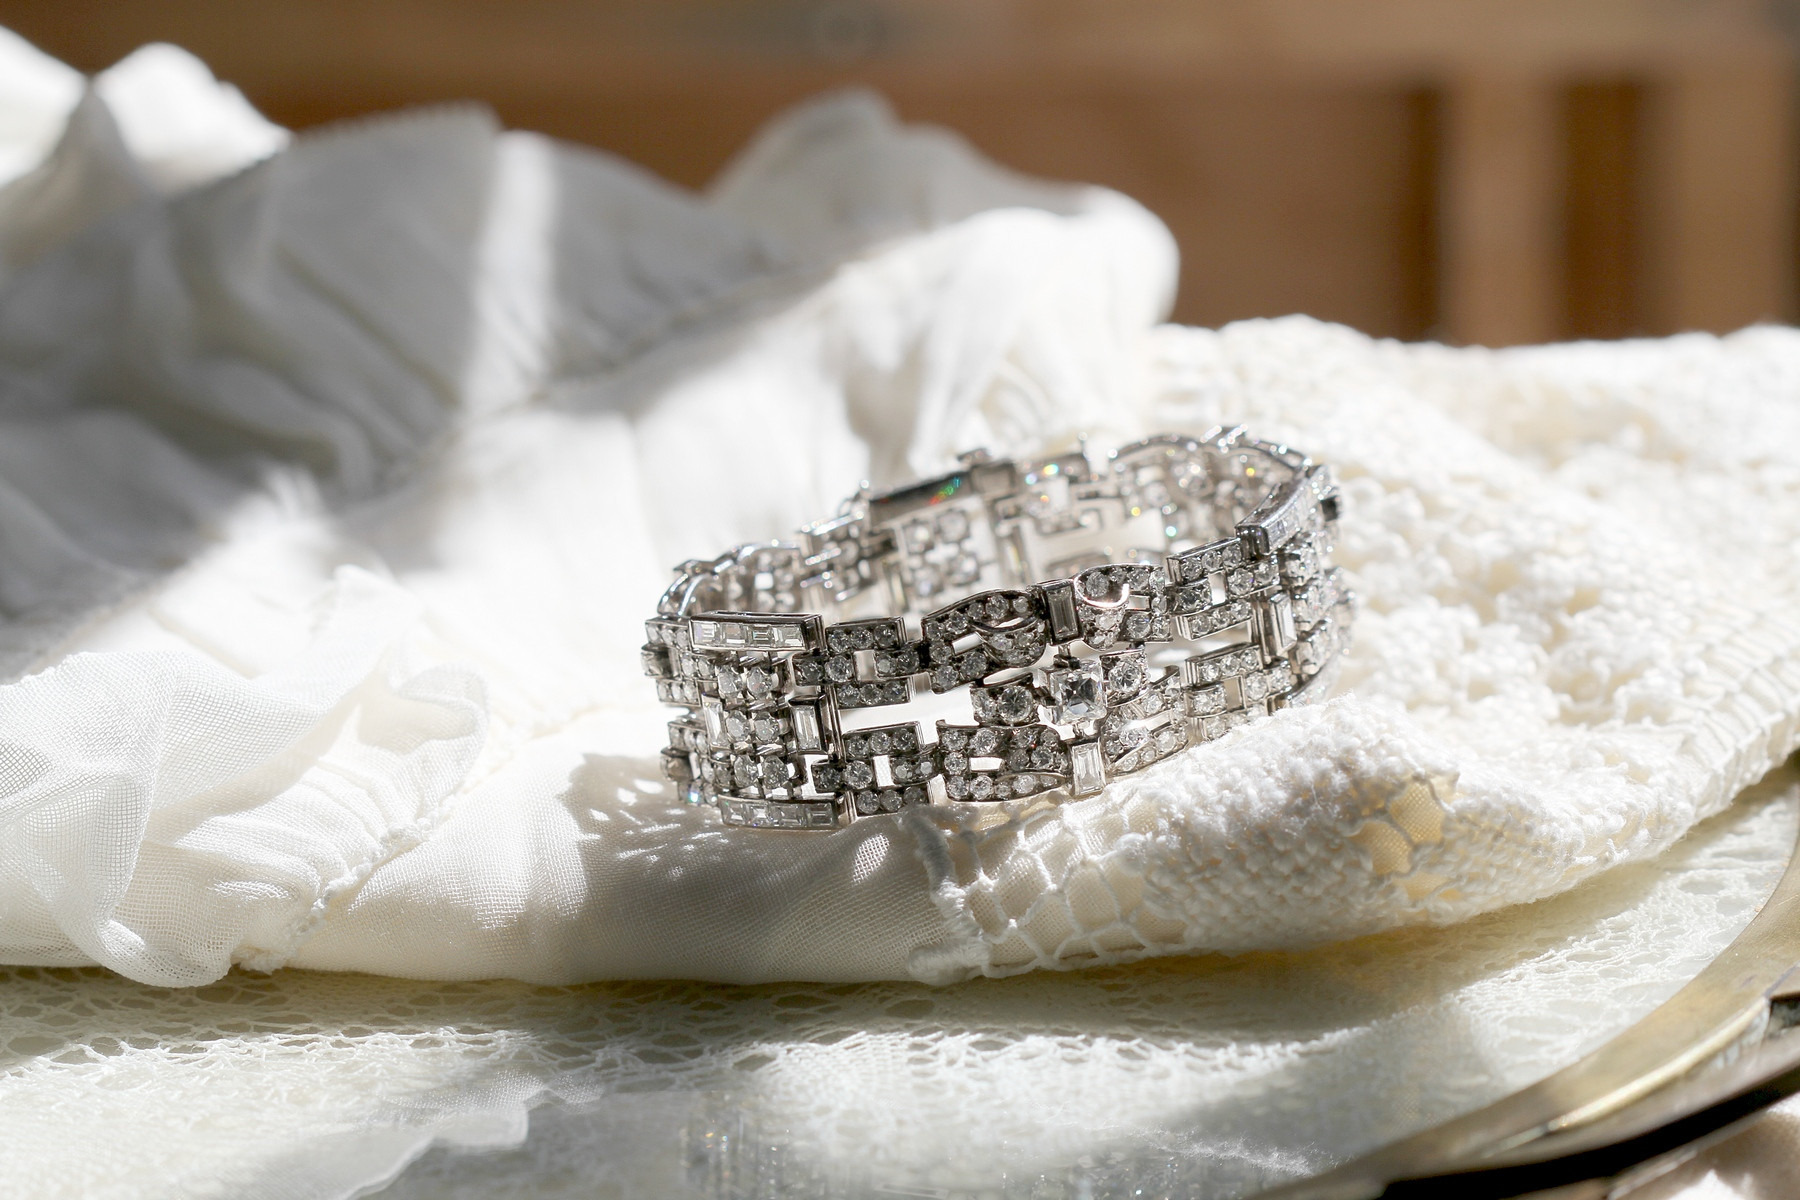 Czech Roots in the World of Diamonds